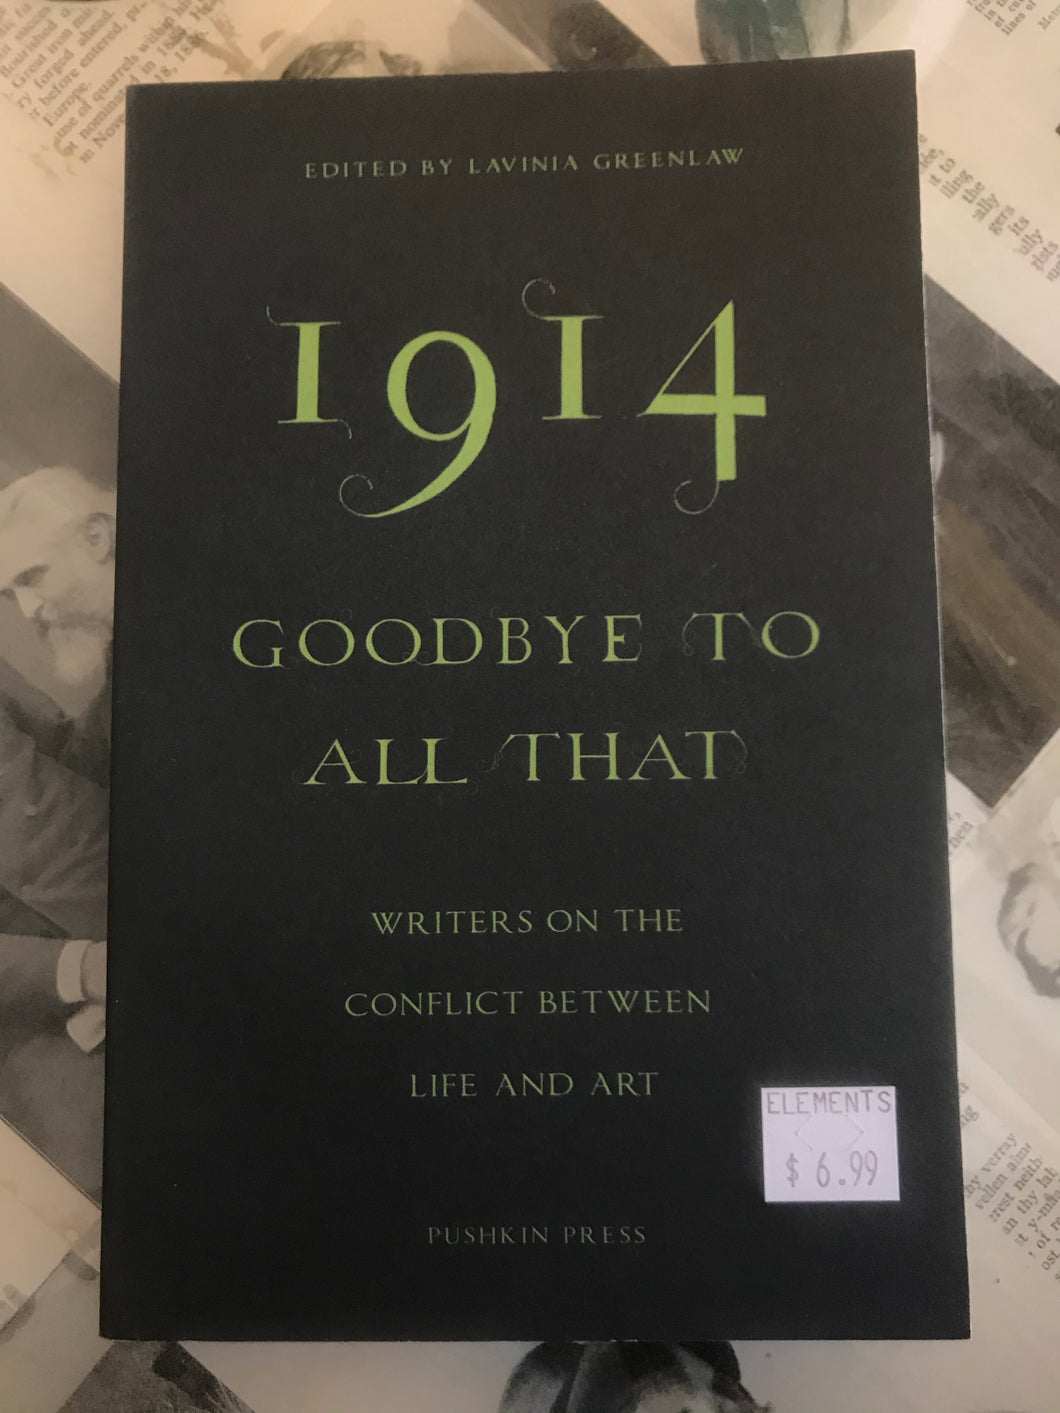 1914: Goodbye to All That / Lavinia Greenlaw